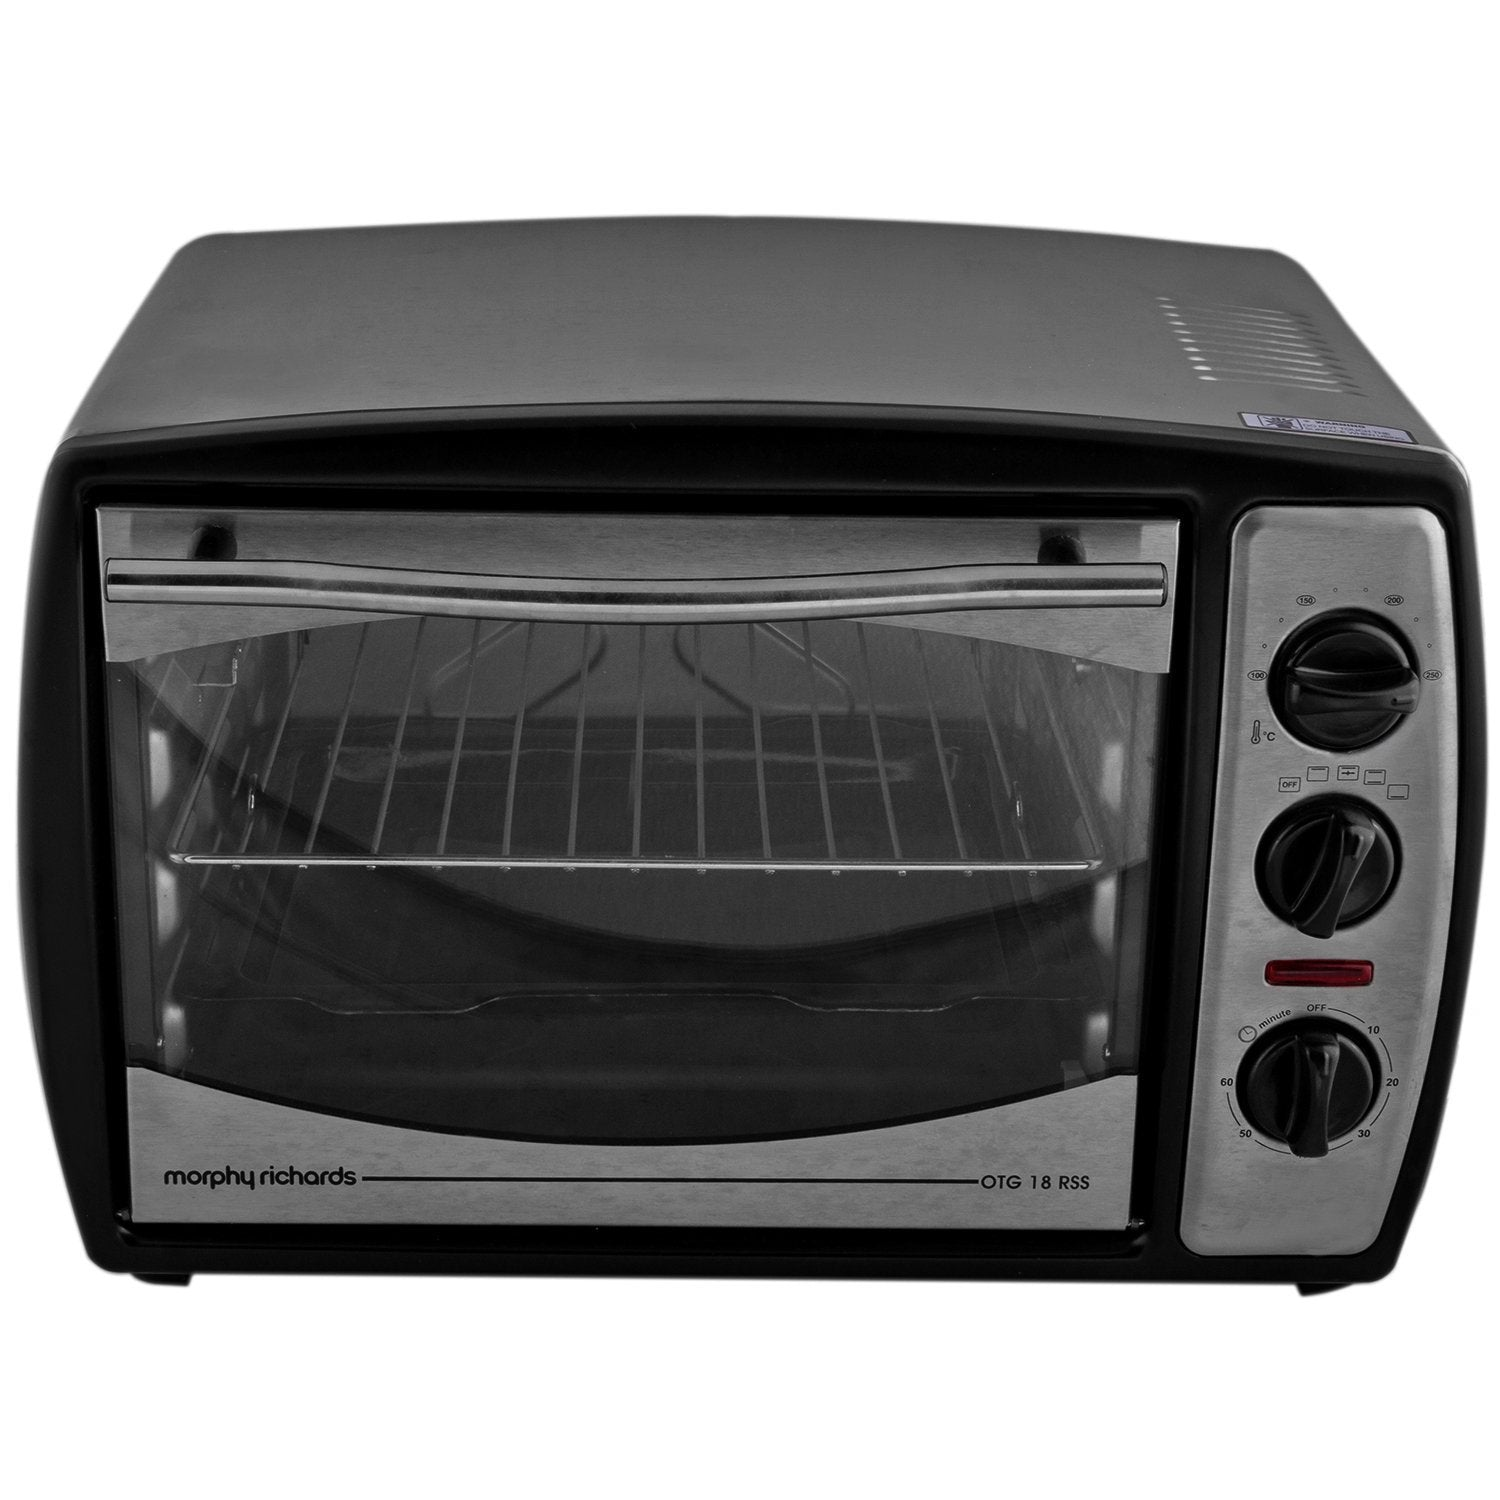 cuisinart fryer stainless garden steel toaster air combination product overstock home free today shipping toa oven